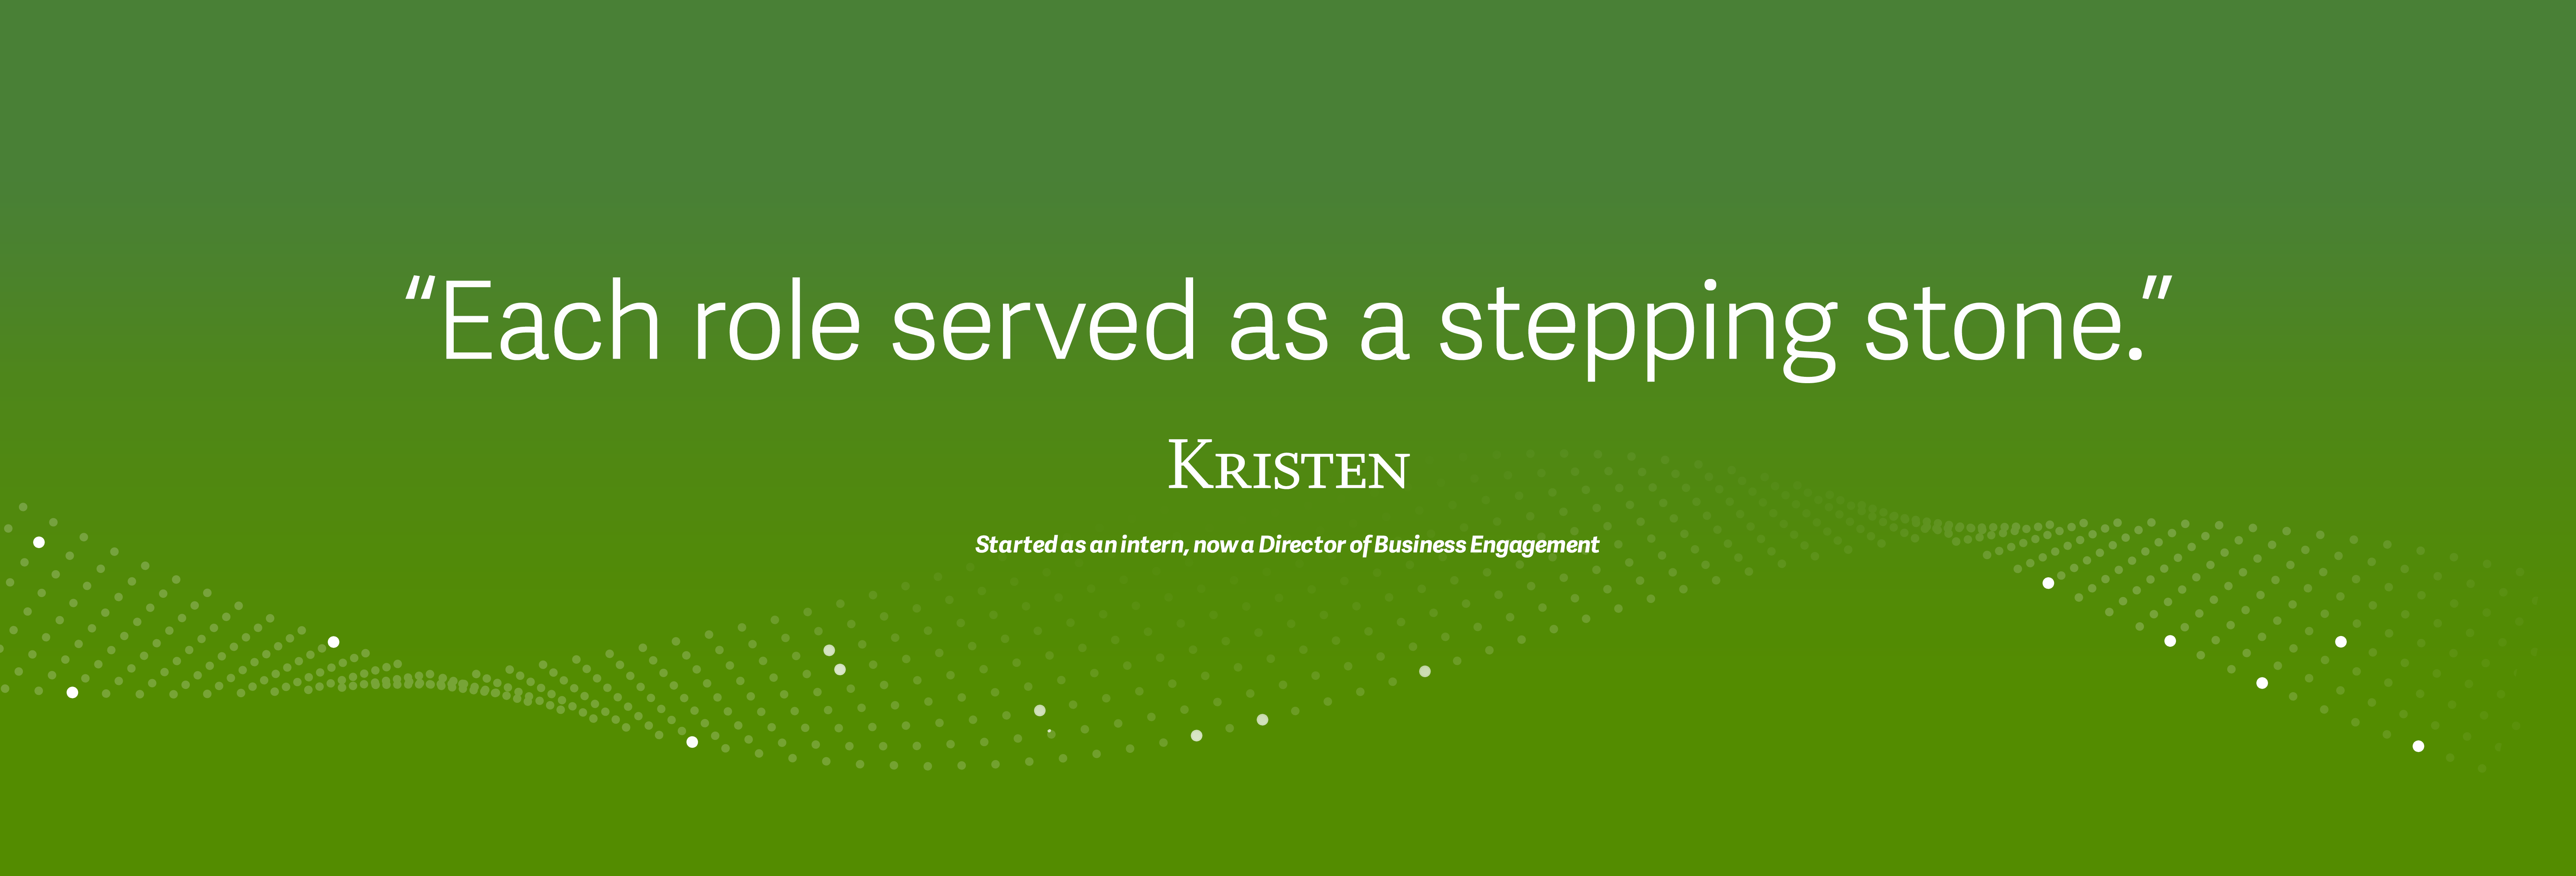 """""""Each role served as a stepping stone"""", Kristen"""